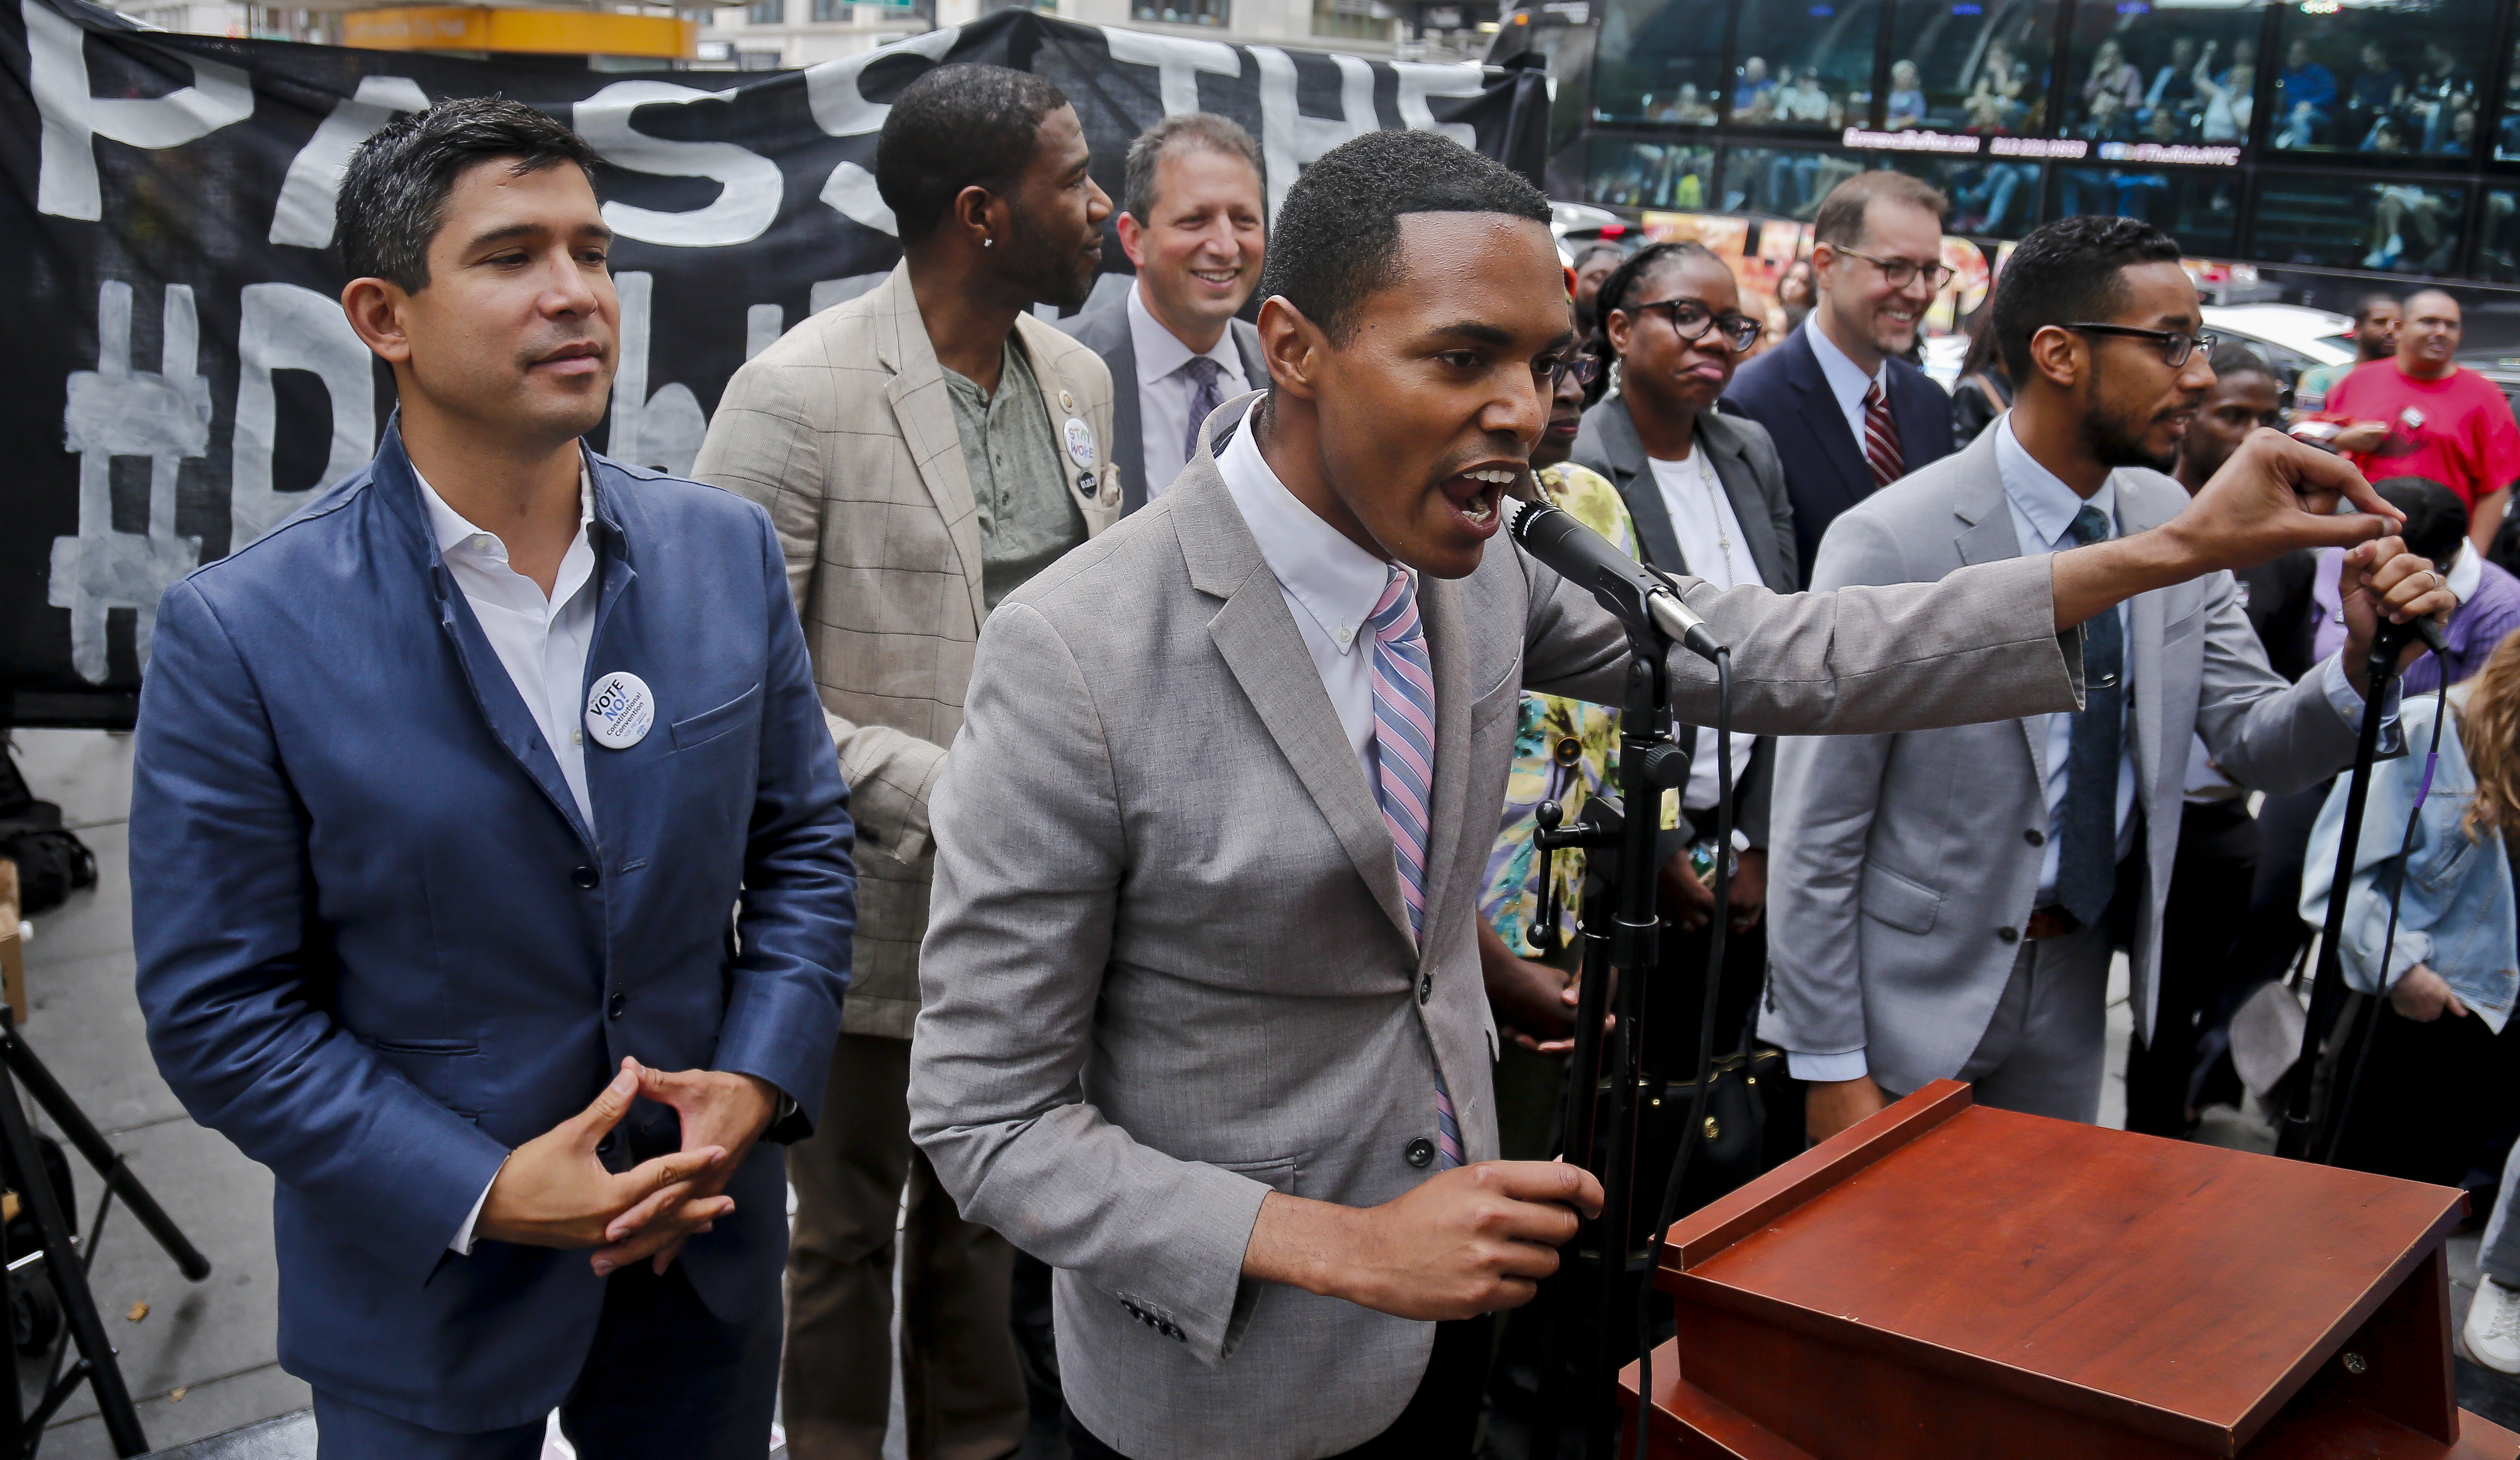 Bronx's first gay city council member likely wins in NY-15